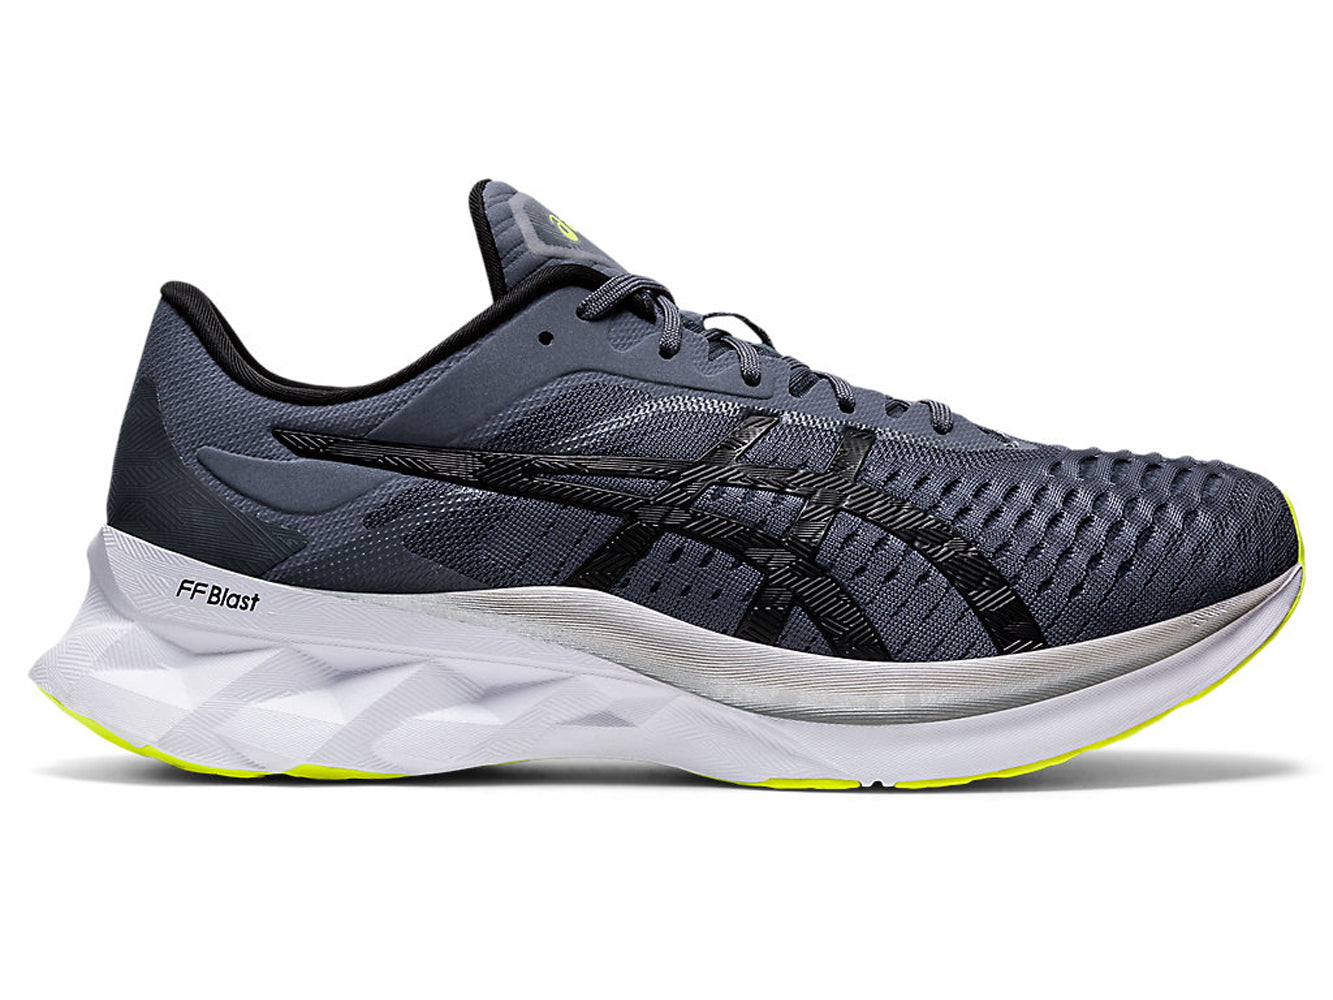 Men's Asics Novablast Running Shoe in Metropolis/Black from the side